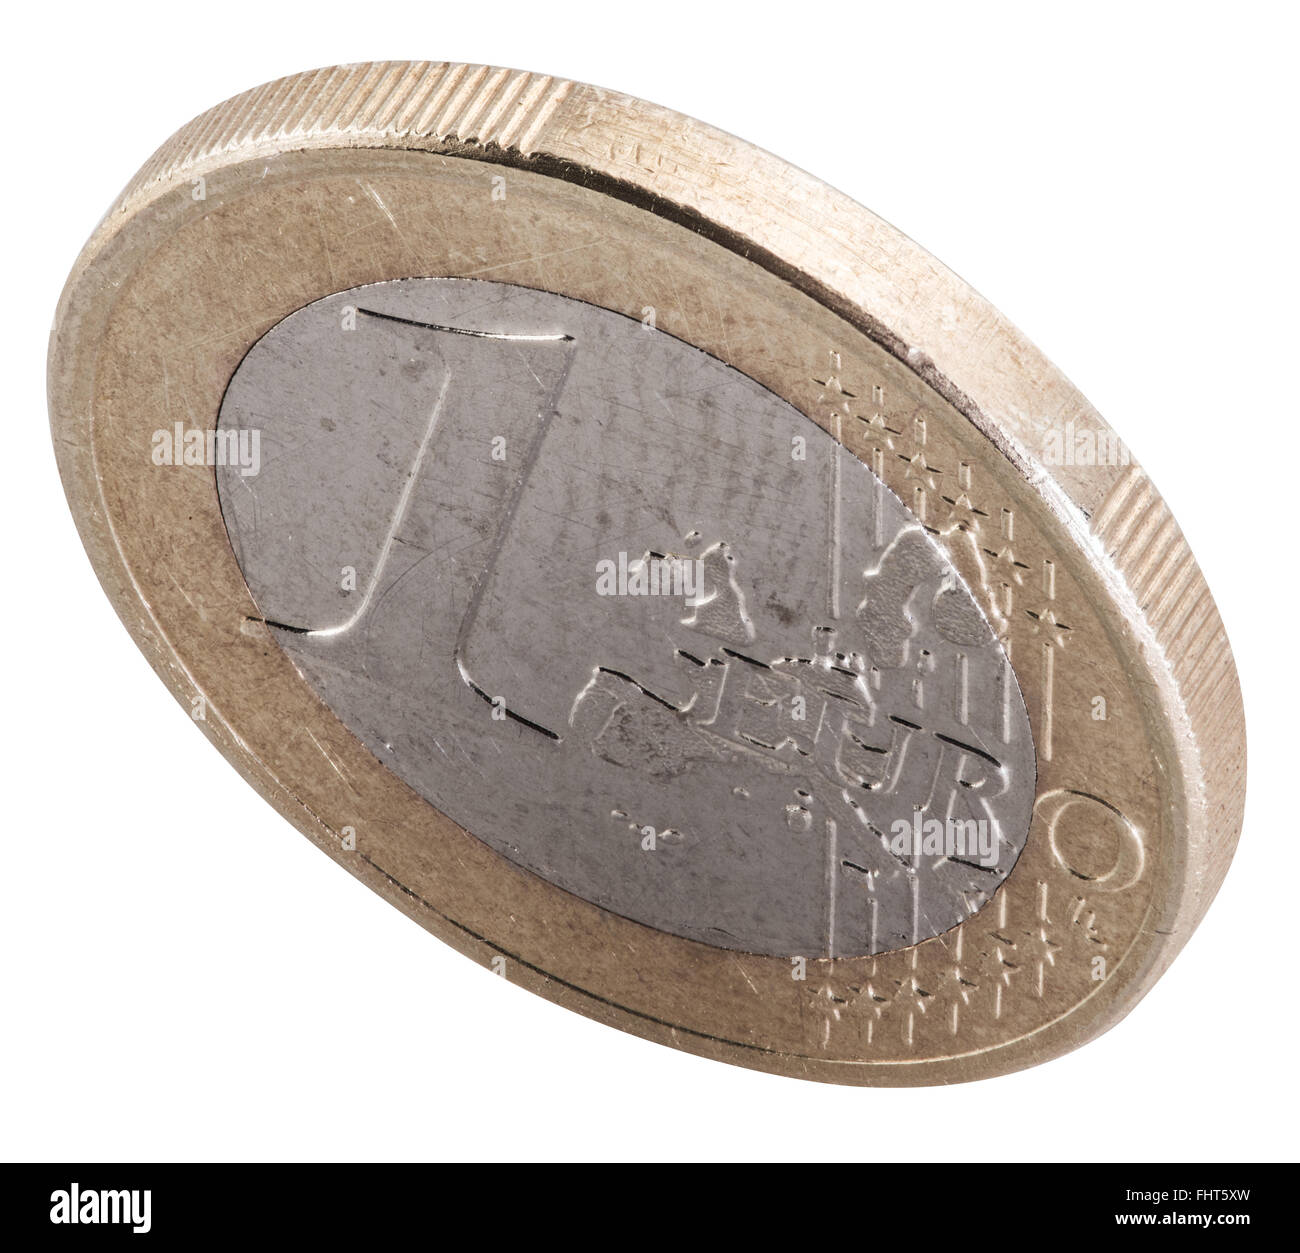 Old one euro coin isolated on a white background. File contains clipping paths. - Stock Image